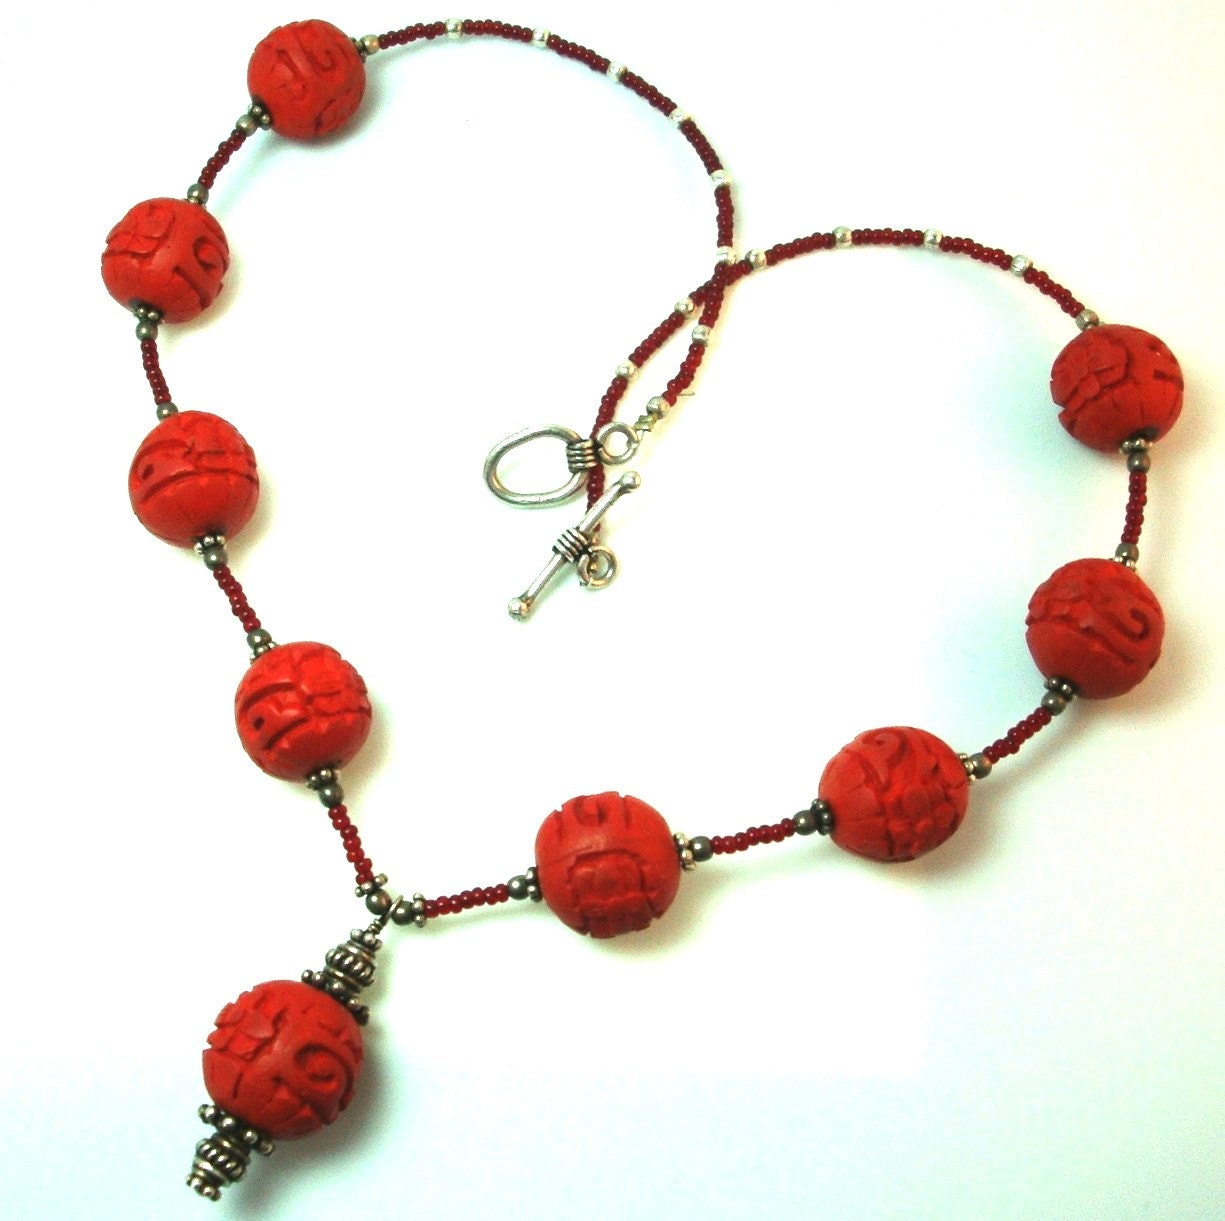 carved cinnabar bead necklace with sterling